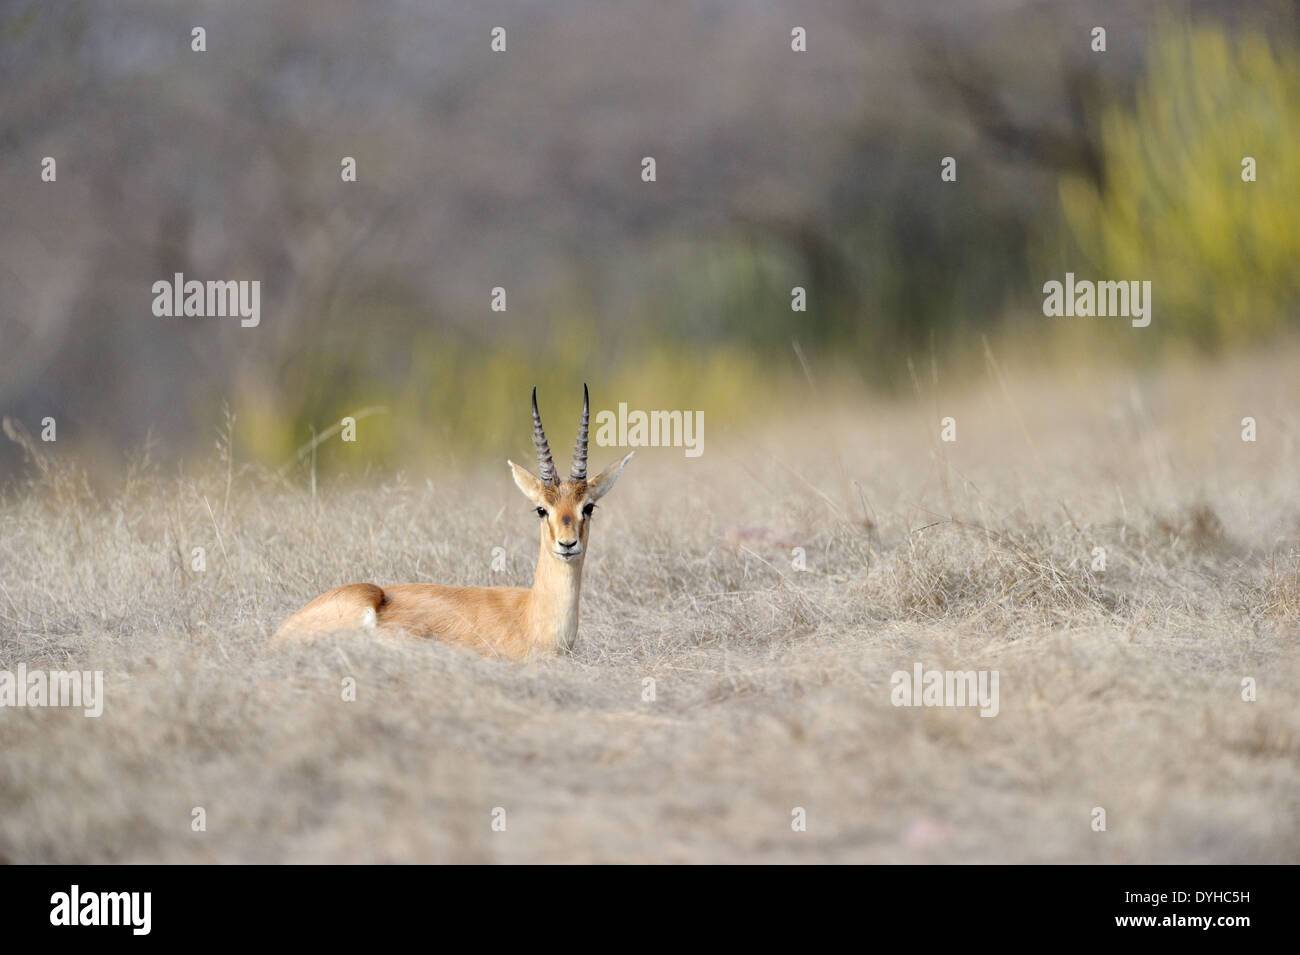 Indian gazelle (Gazella bennettii) lying on savanna. - Stock Image